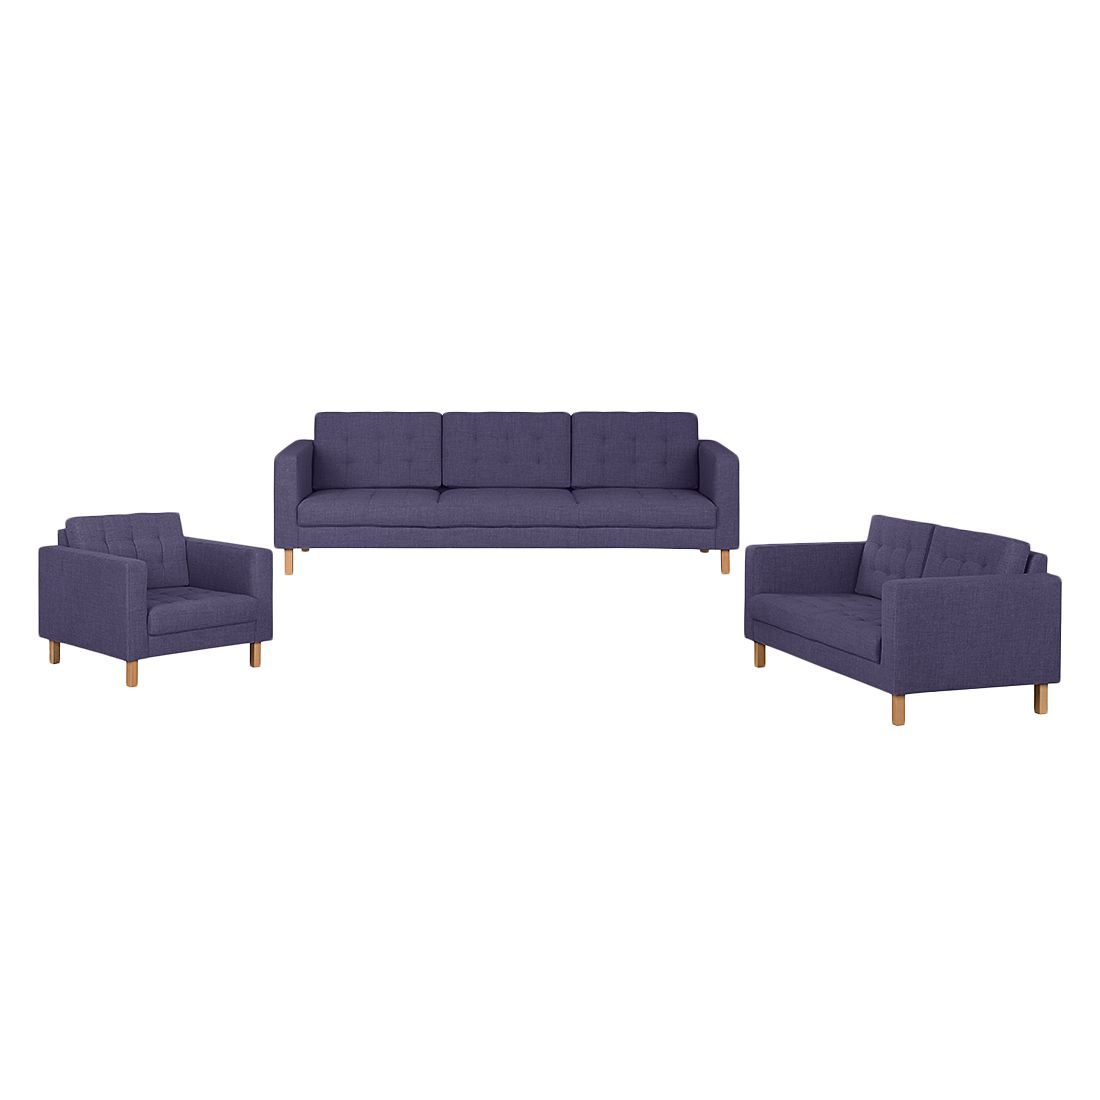 polstergarnitur grums ii 3 2 1 webstoff violett fredriks g nstig bestellen. Black Bedroom Furniture Sets. Home Design Ideas